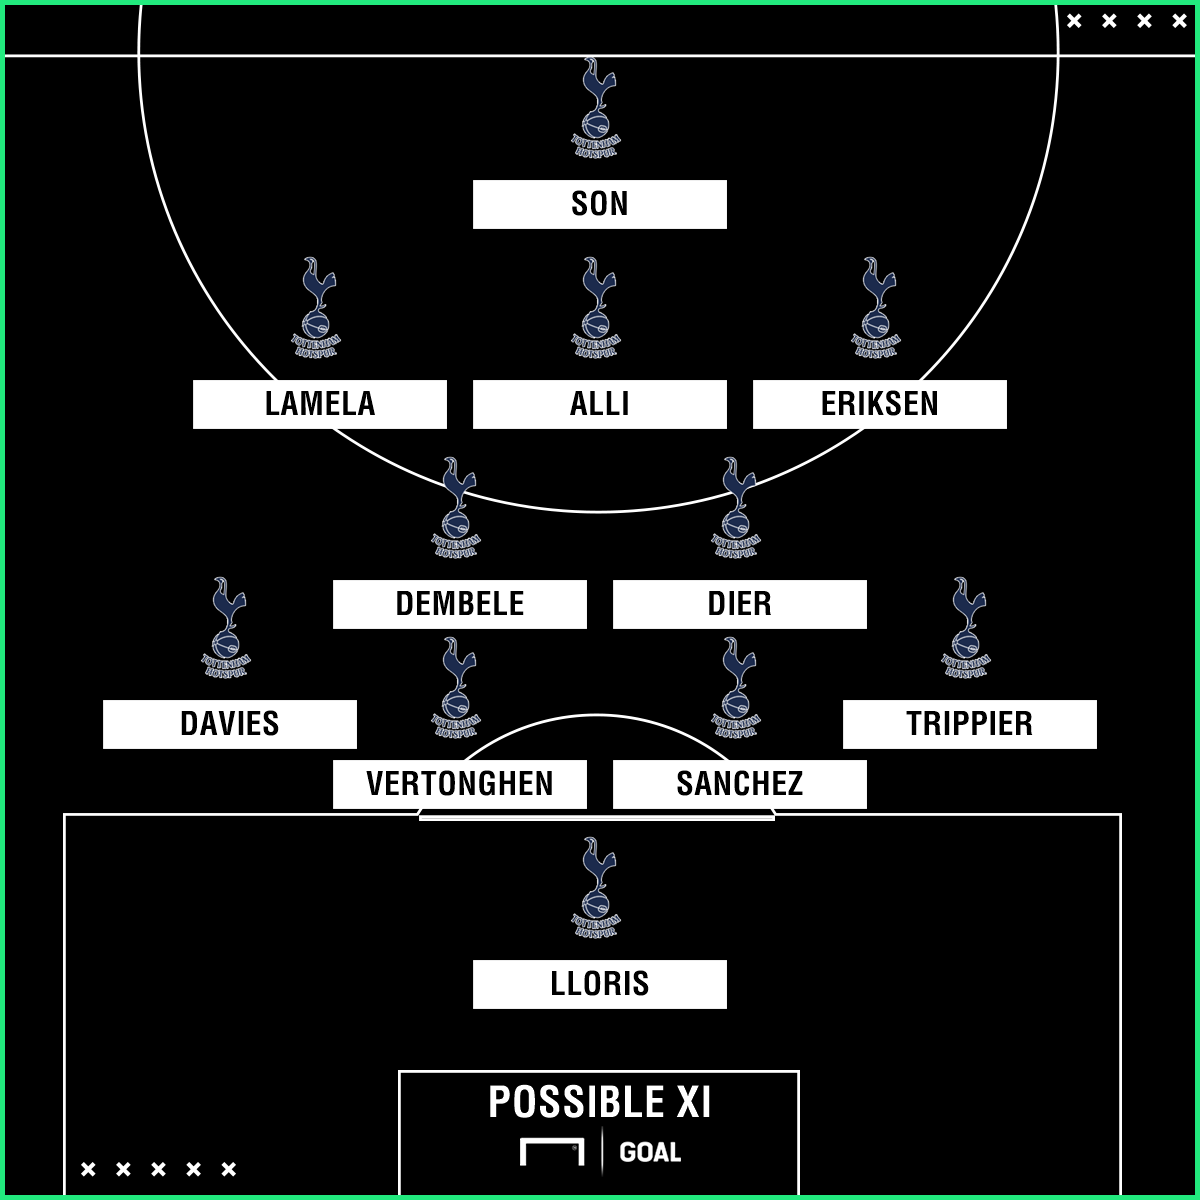 Tottenham possible XI vs Chelsea